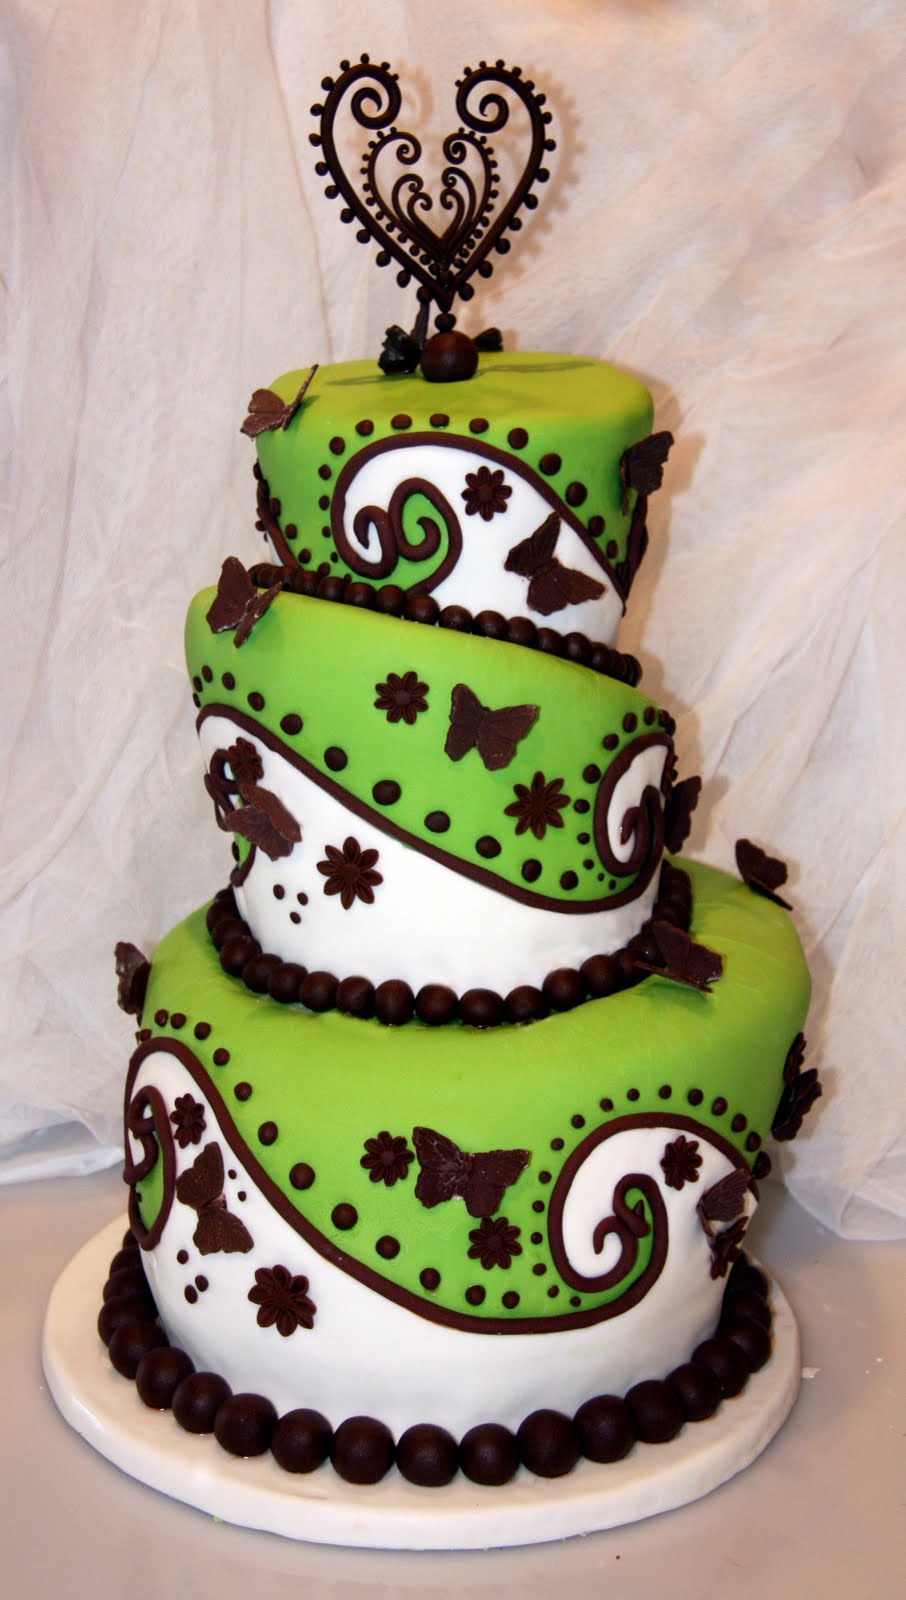 Cake Designs Green : Living Life: For The Love of Cake